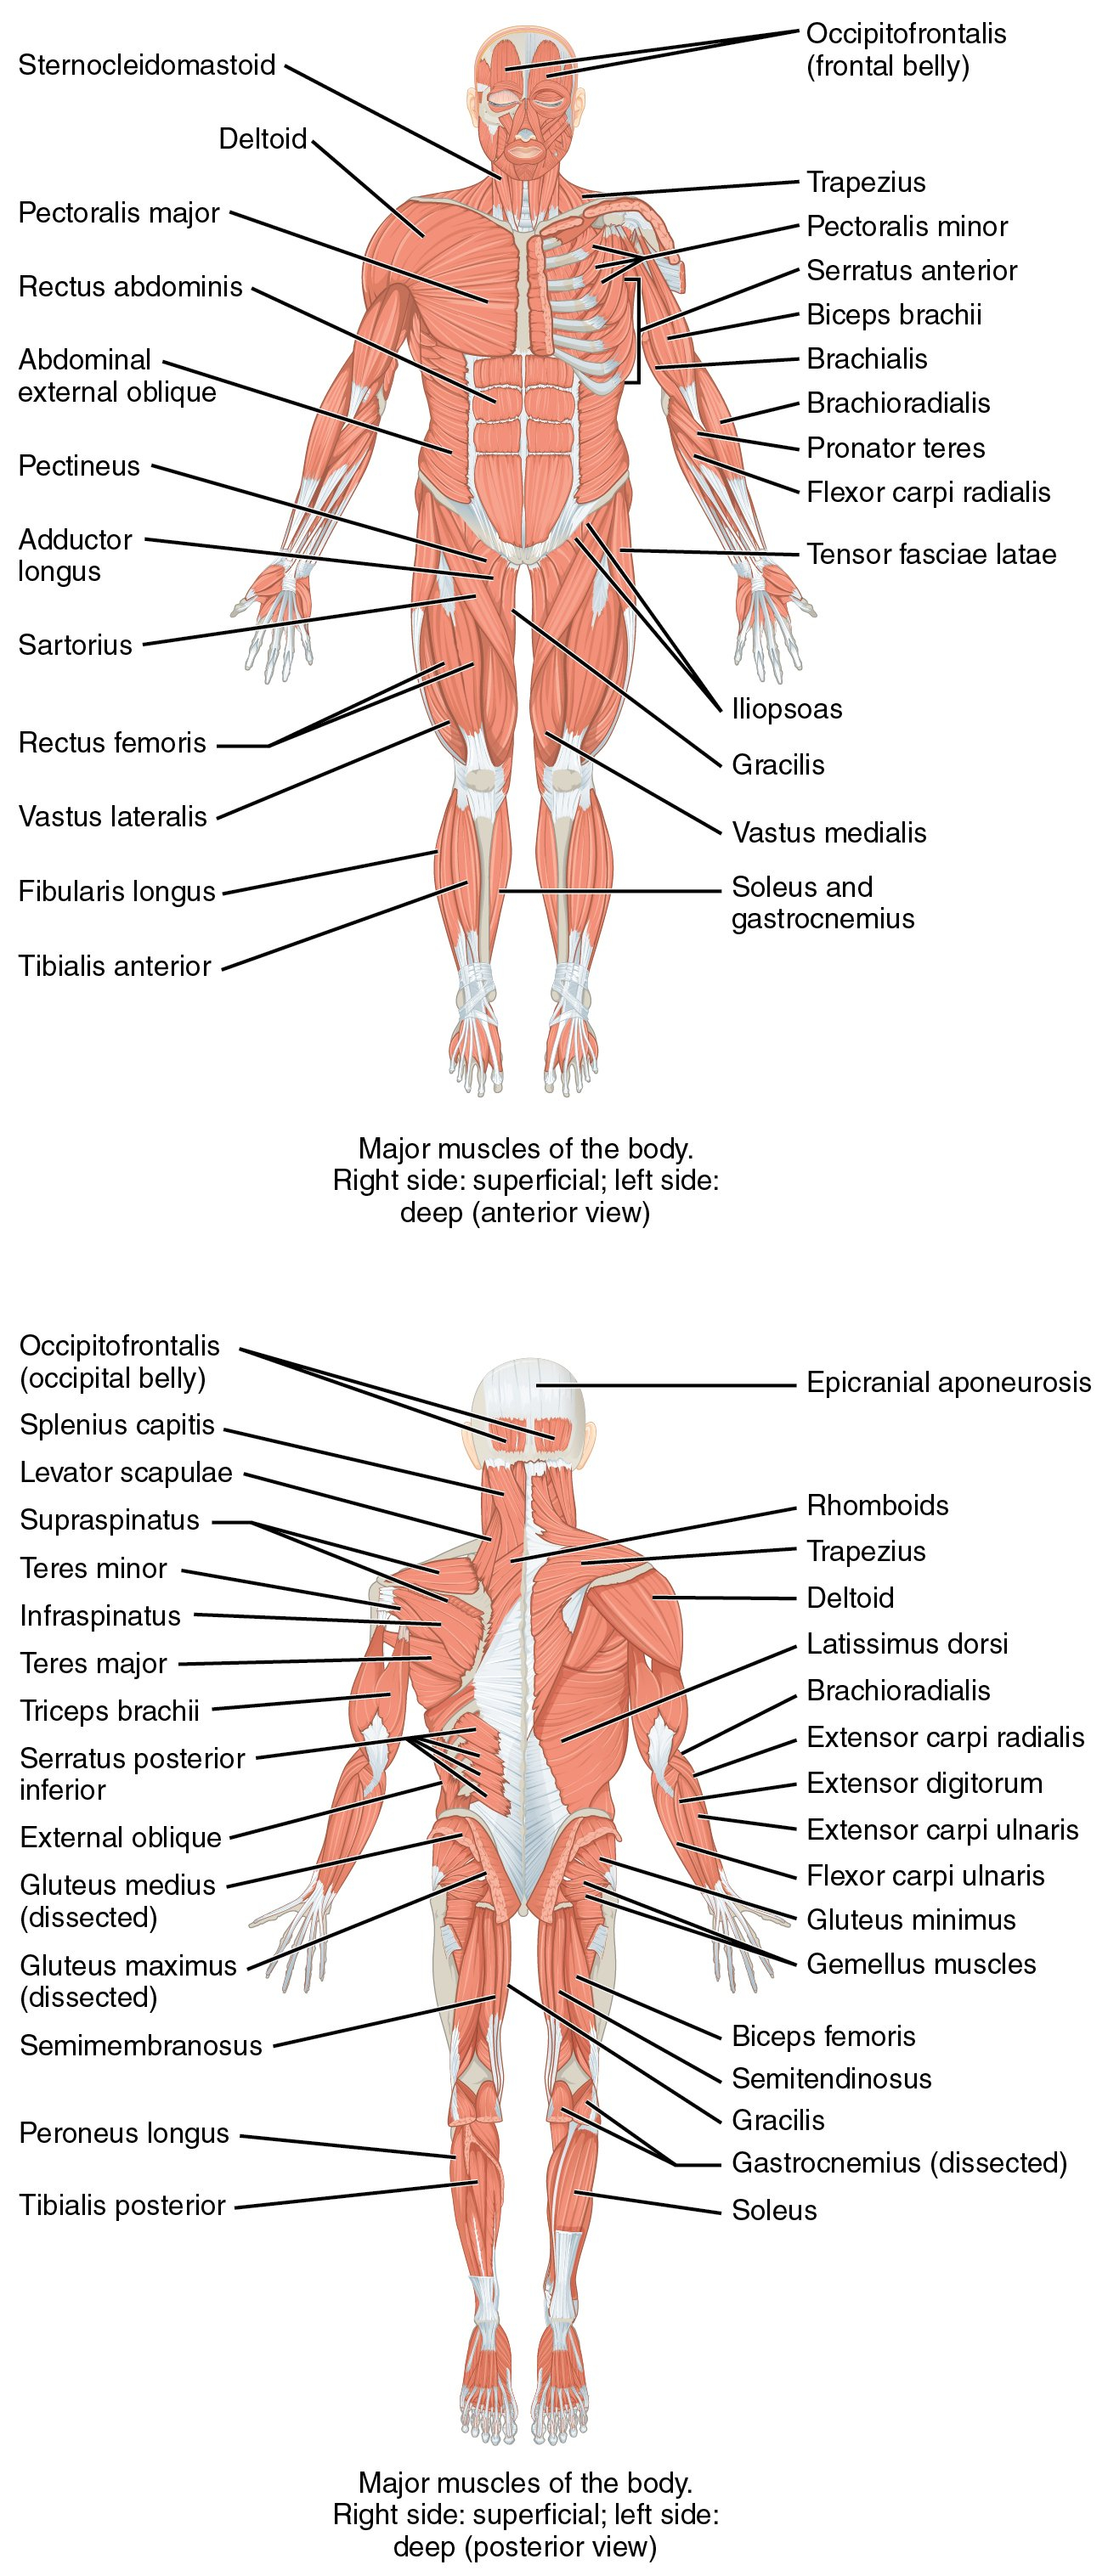 112 Naming Skeletal Muscles – Anatomy And Physiology With Regard To Muscular System Worksheet